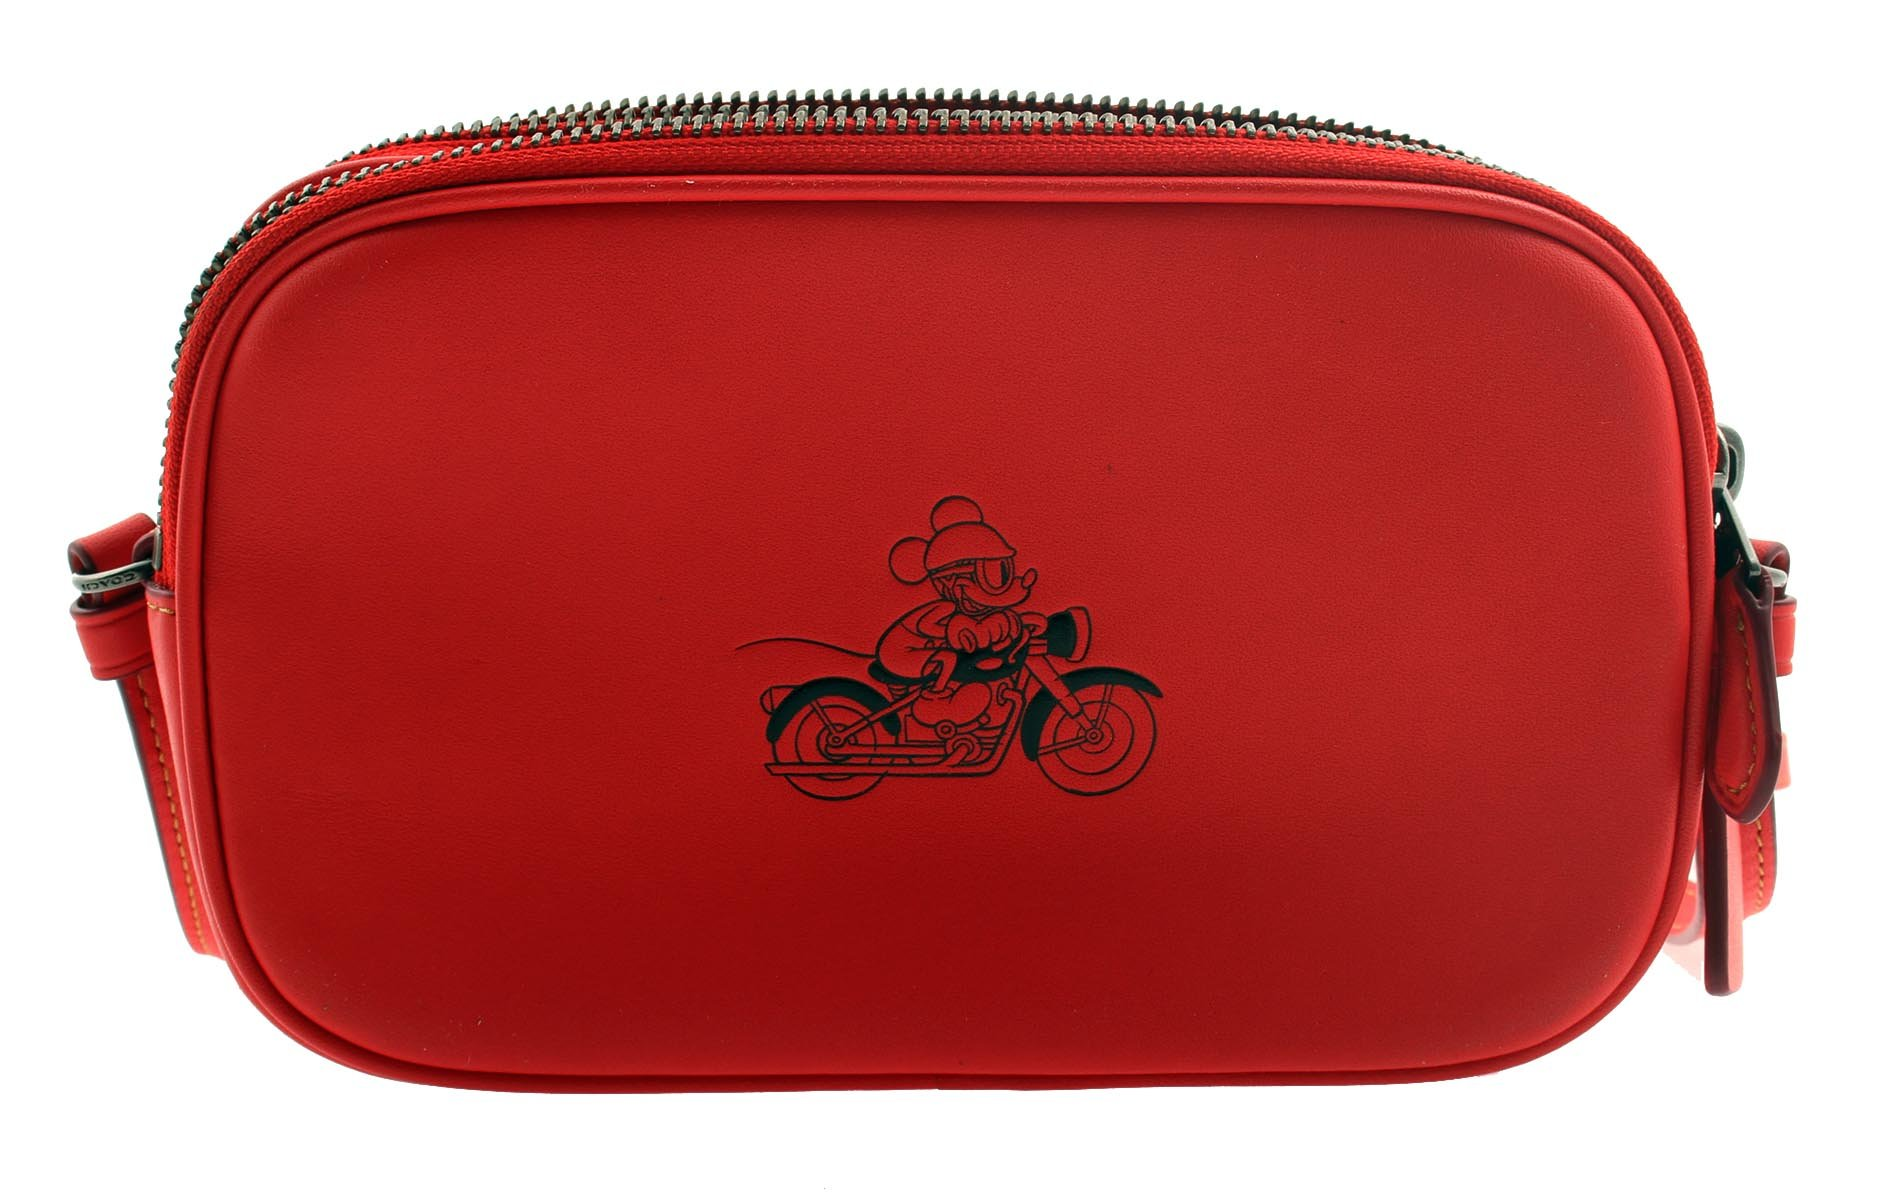 COACH MICKEY Crossbody Pouch in Glove Calf Leather (Bright Red)